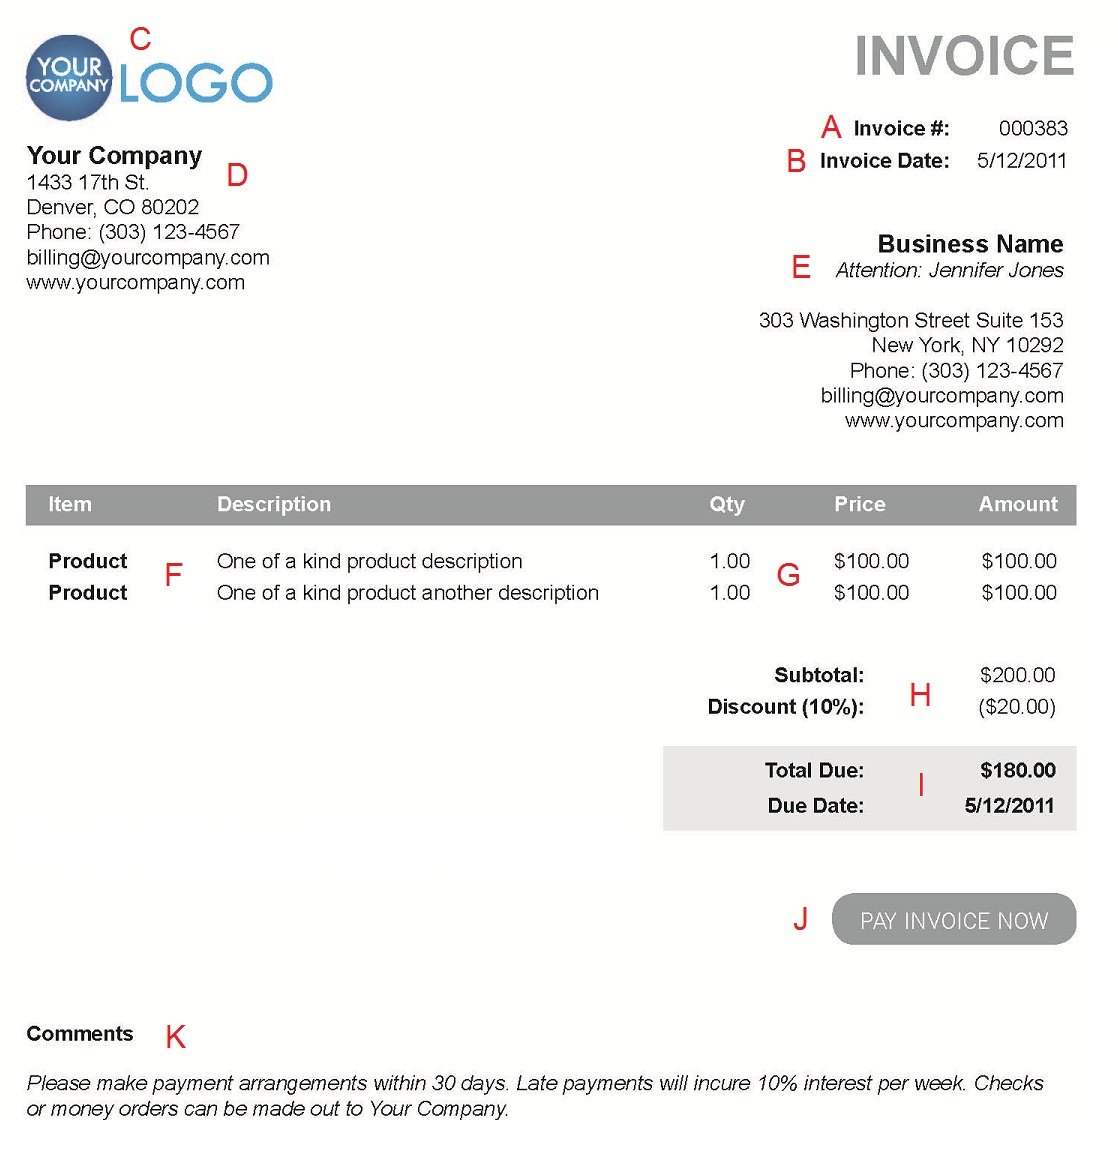 Opposenewapstandardsus  Stunning The  Different Sections Of An Electronic Payment Invoice With Great A  With Cute Shaw Invoice Also Typical Invoice Layout In Addition Rental Invoice Format And Make A Fake Invoice As Well As What Is A Service Invoice Additionally Best Program For Invoices From Paysimplecom With Opposenewapstandardsus  Great The  Different Sections Of An Electronic Payment Invoice With Cute A  And Stunning Shaw Invoice Also Typical Invoice Layout In Addition Rental Invoice Format From Paysimplecom